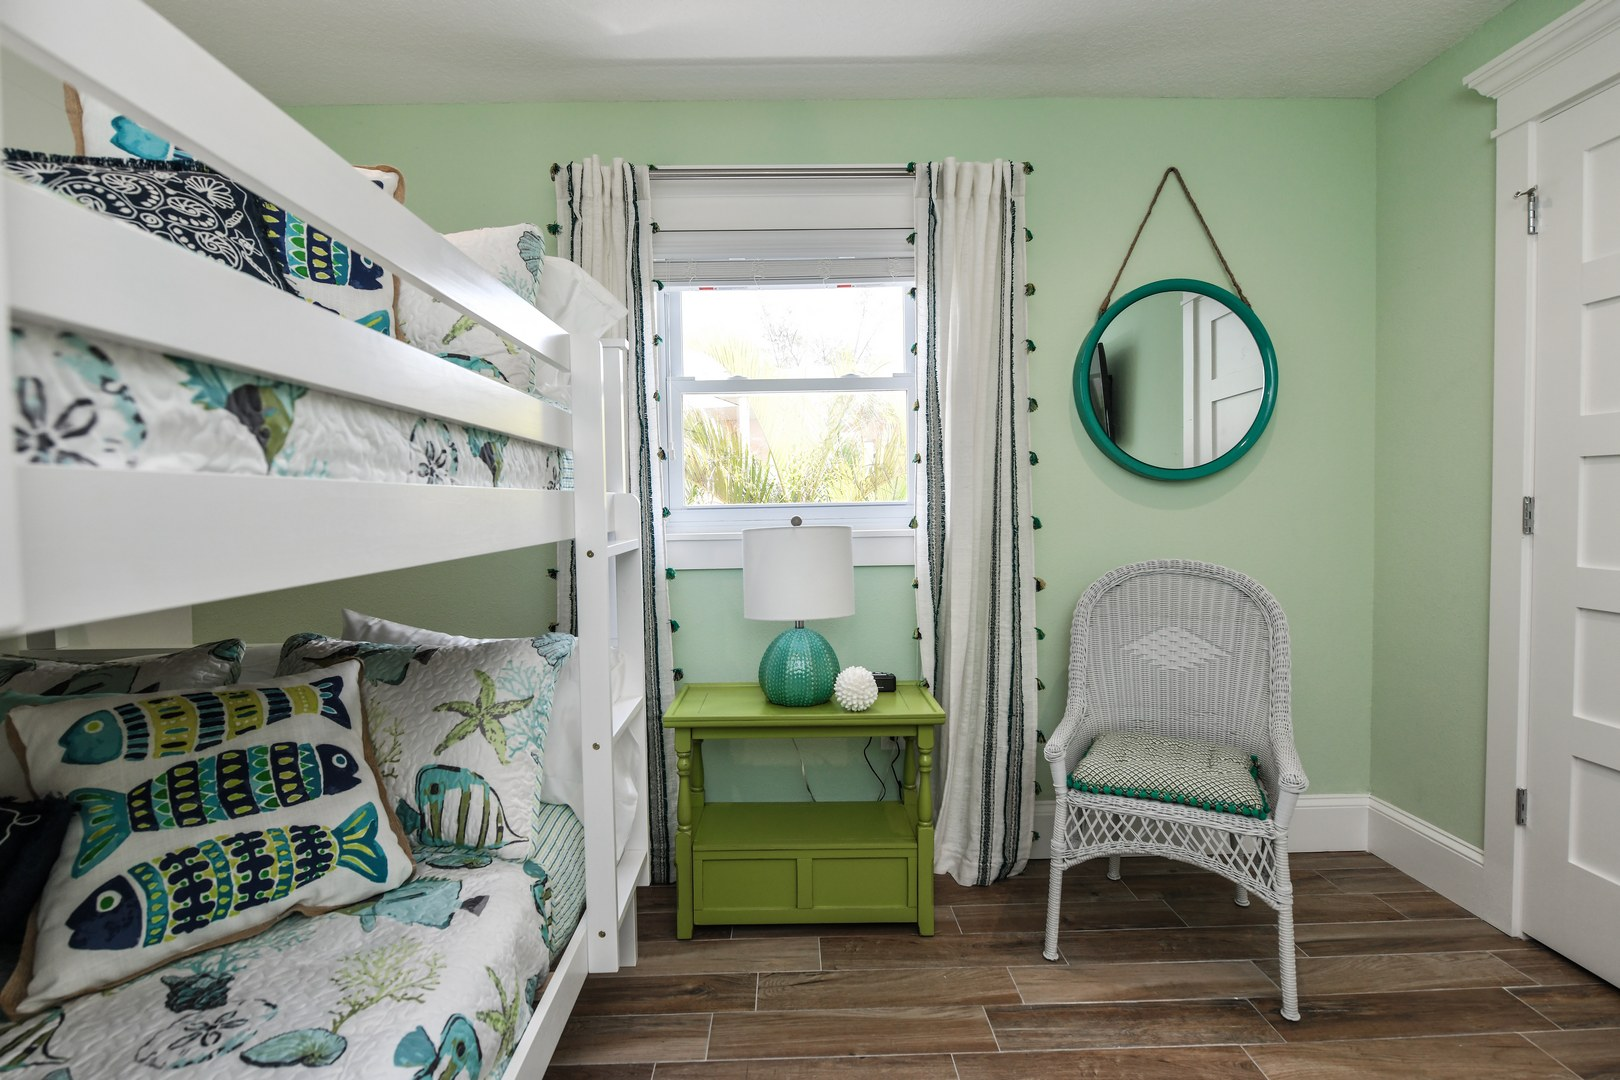 2 Full Beds - Perfect for Kids, Teens, or Adults